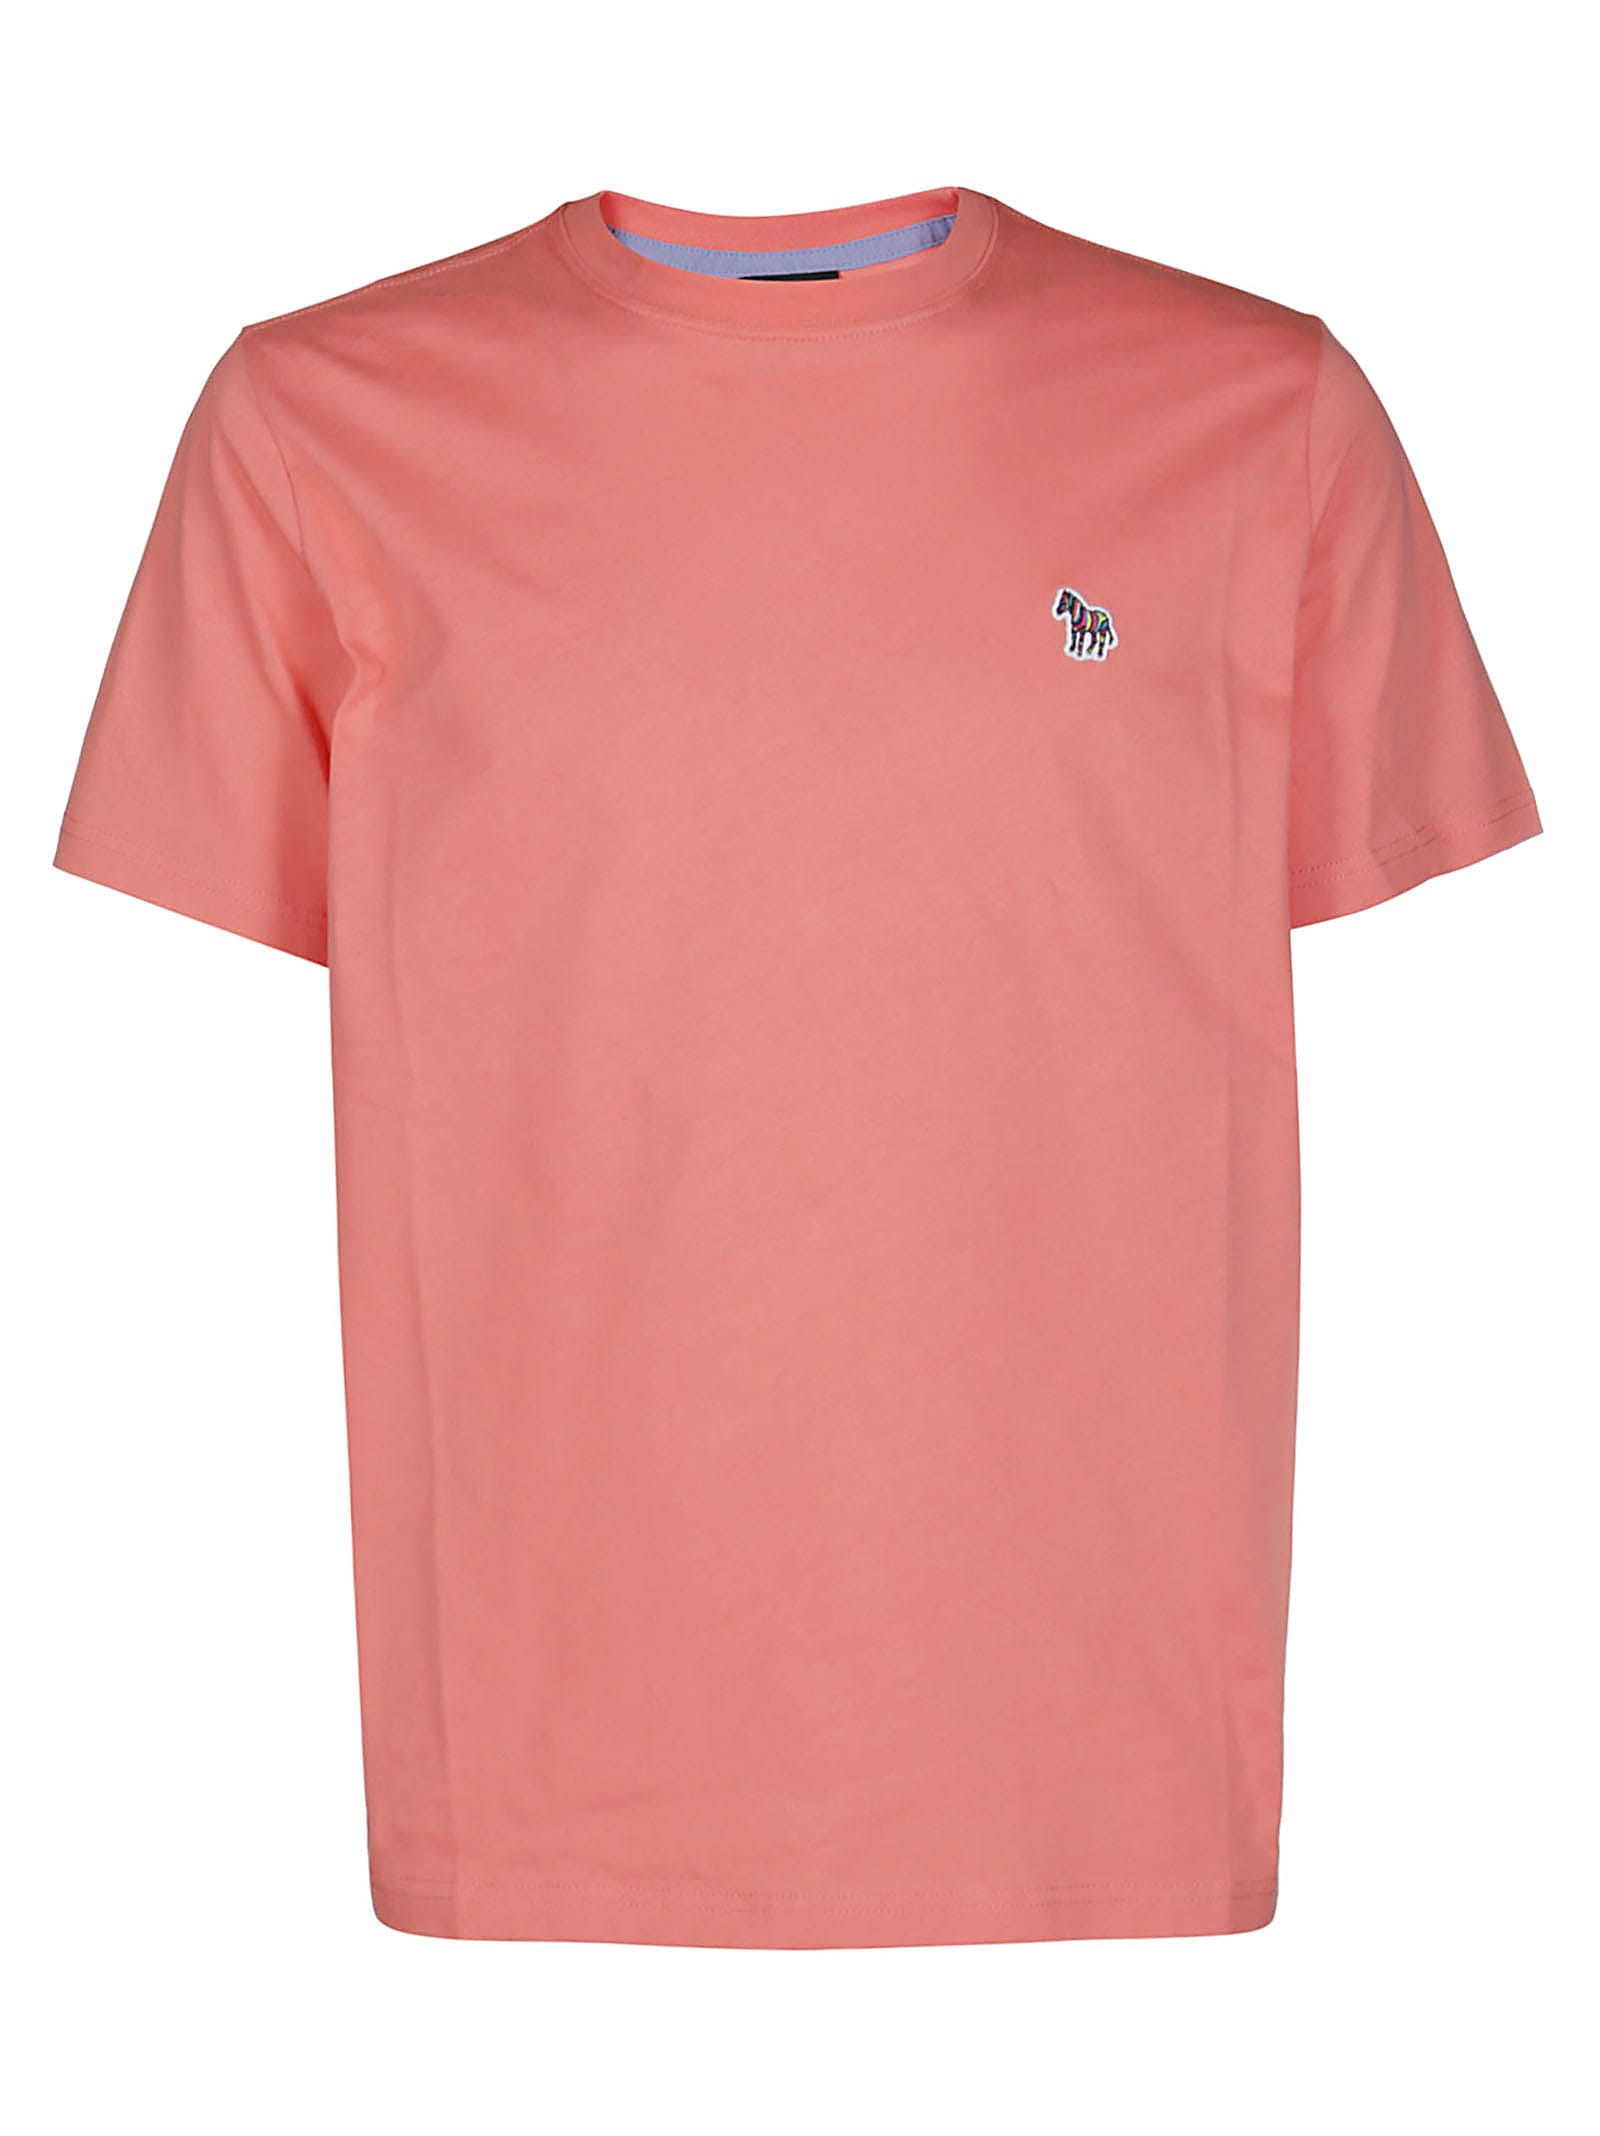 Ps By Paul Smith T-shirts CORAL PINK COTTON T-SHIRT